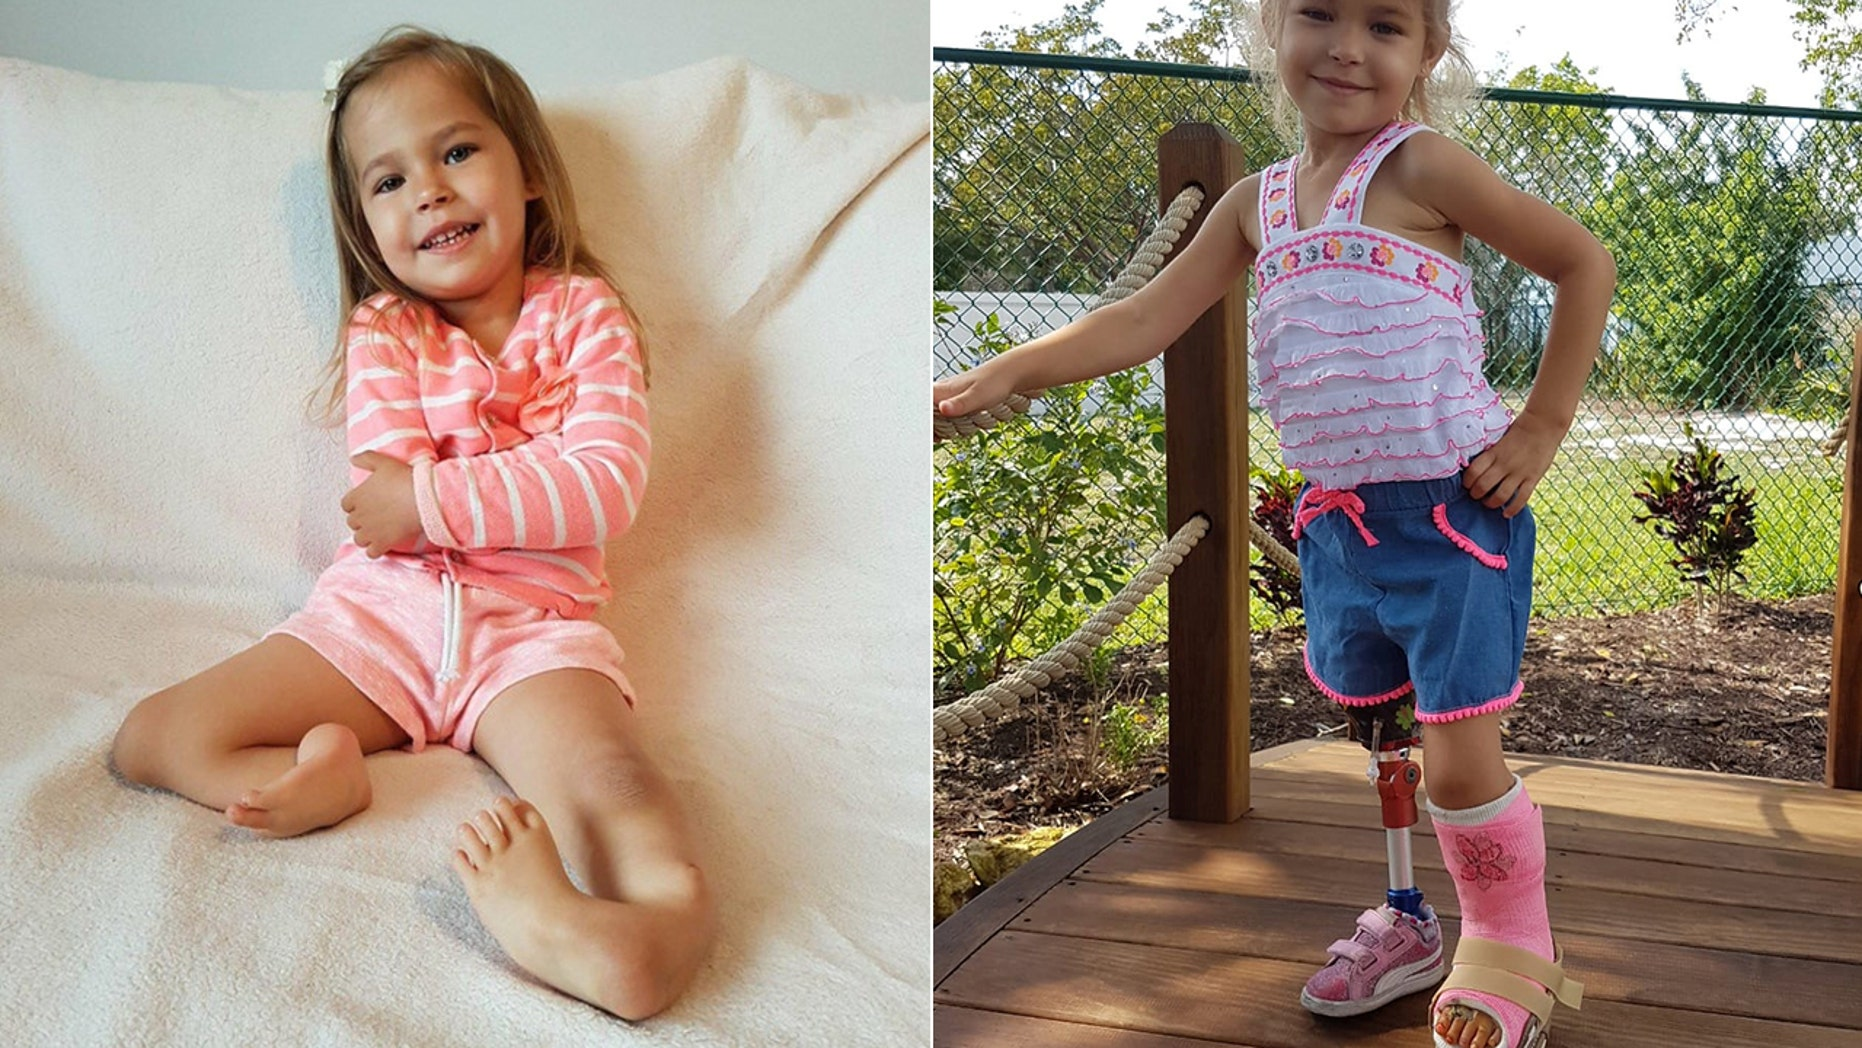 Westlake Legal Group victoria_surgery 3-year-old born with 'backward' legs takes first steps after pioneering surgery SWNS fox-news/health/medical-research/surgery fox-news/health/medical-research/rare-diseases fox-news/health/healthy-living/childrens-health fnc/health fnc d0062ca7-dbc3-5724-ba11-ccfb4a758ee2 article Amelia Wynne